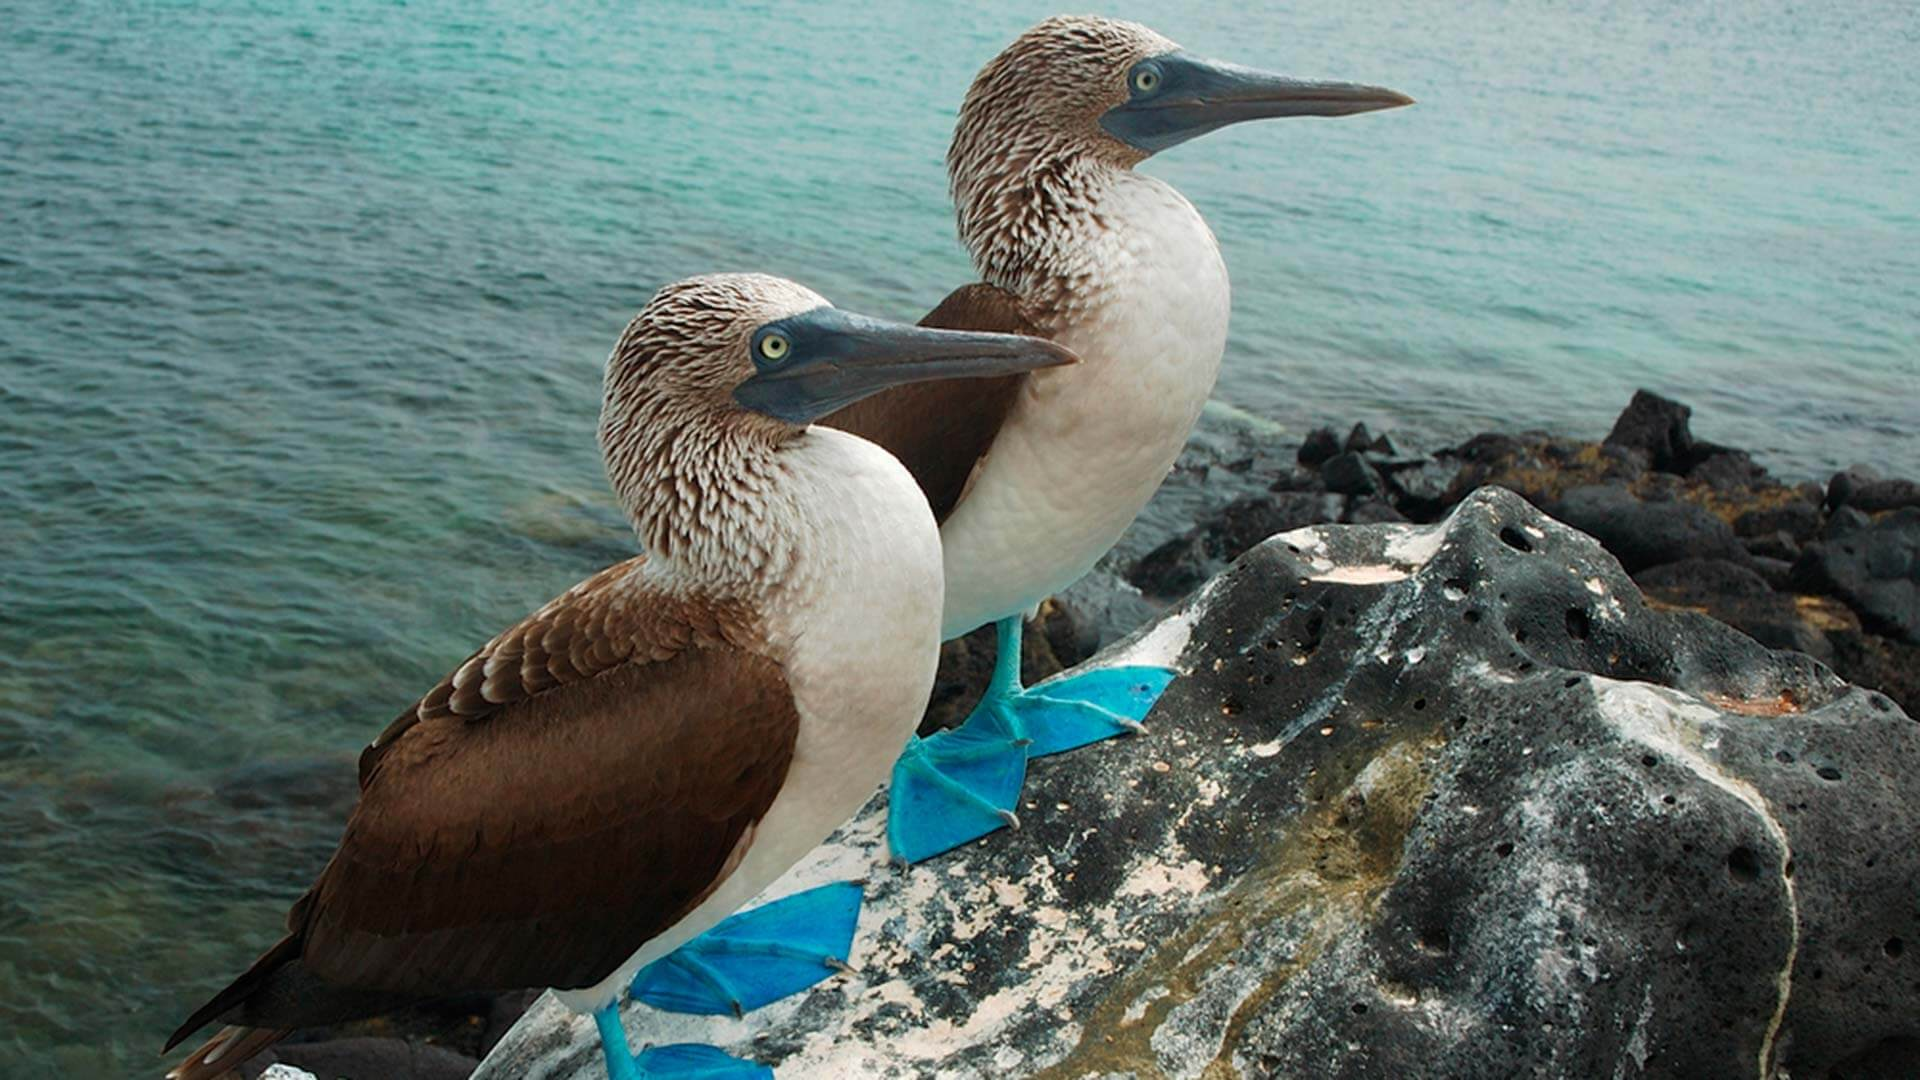 2 blue footed boobies sit together at the galapagos islands